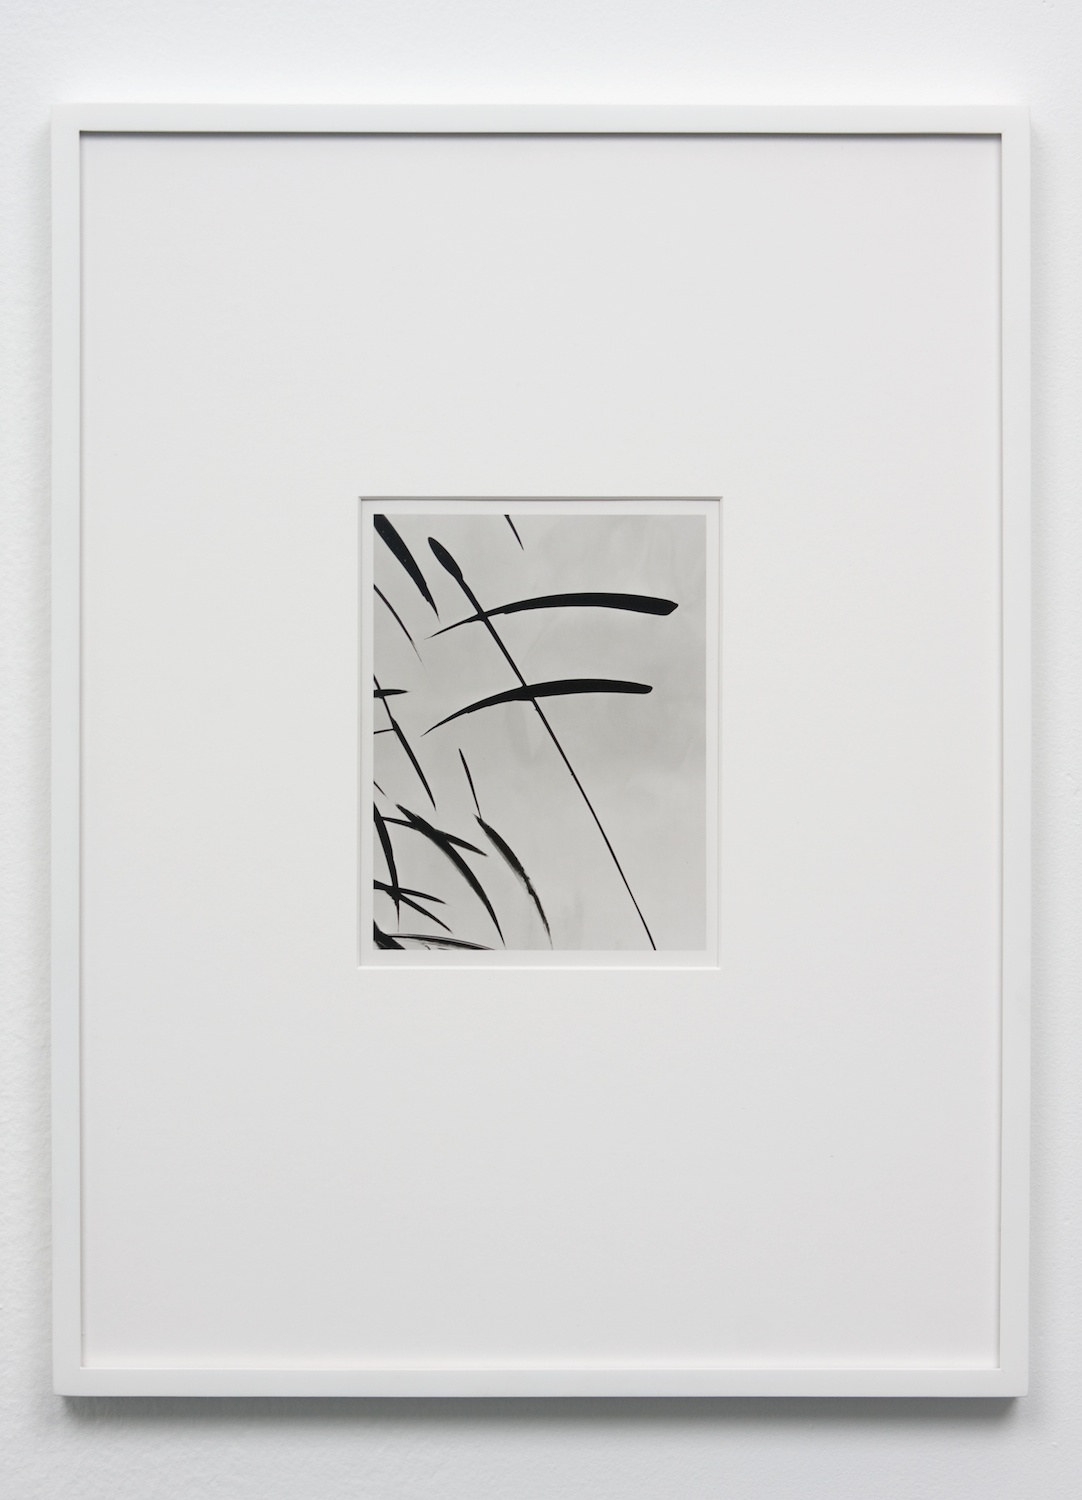 Anthony Pearson  Untitled (Solarization)  2010 Framed solarized silver gelatin photograph 17 ½h x 13 ¼w in AP240